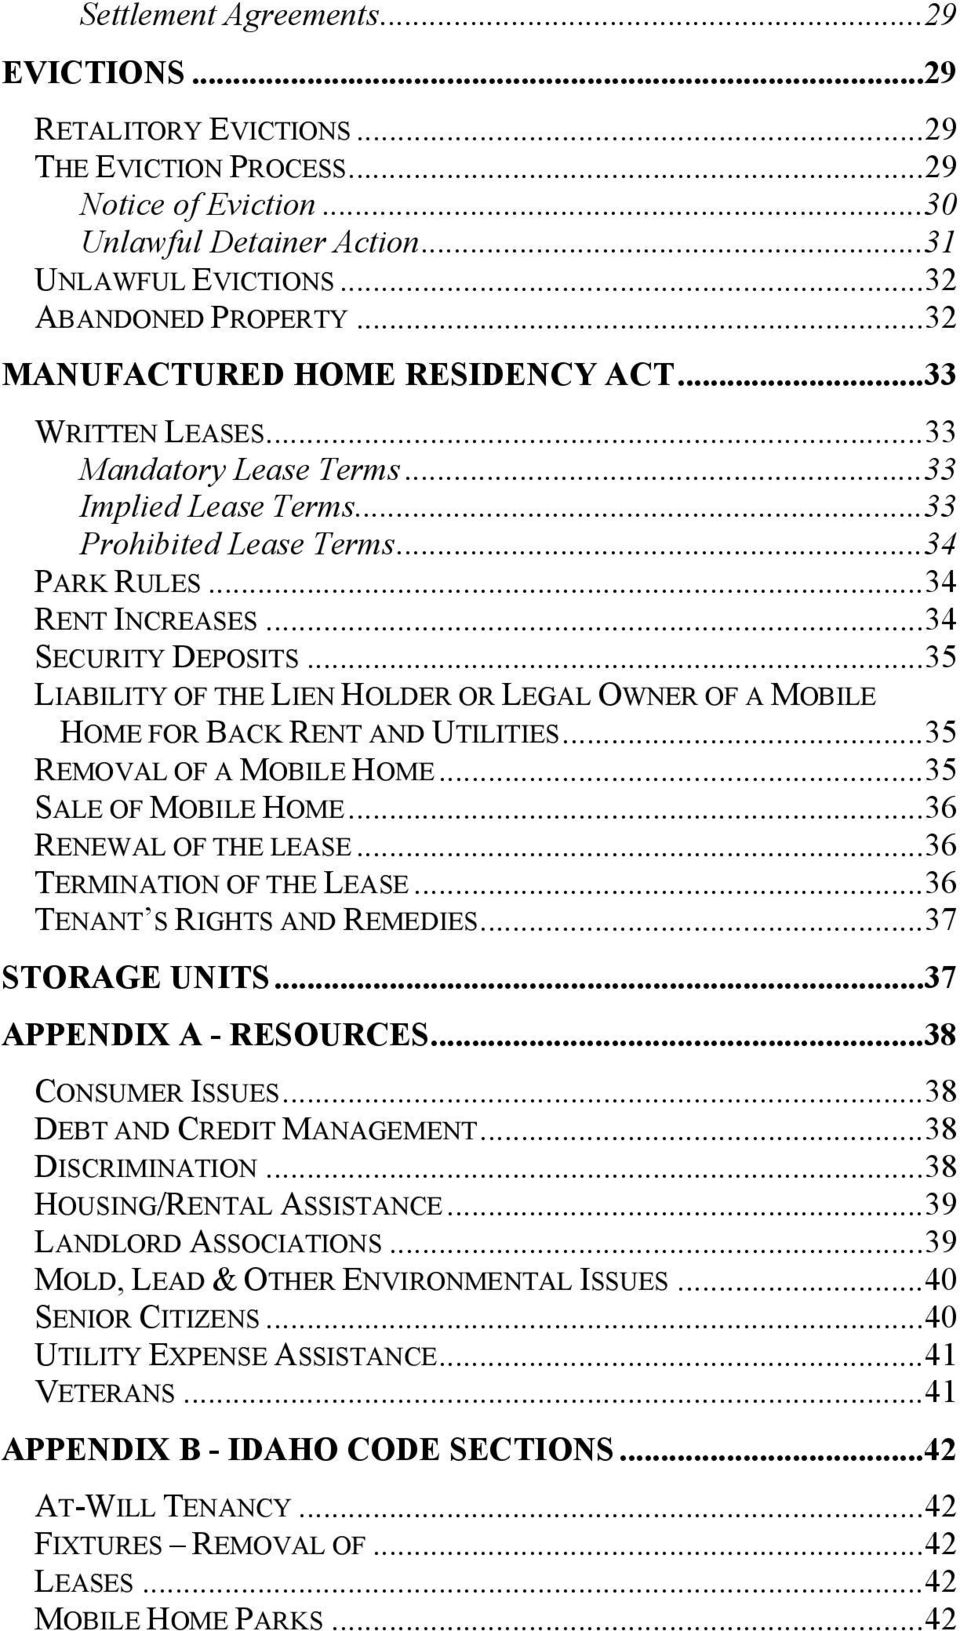 .. 34 SECURITY DEPOSITS... 35 LIABILITY OF THE LIEN HOLDER OR LEGAL OWNER OF A MOBILE HOME FOR BACK RENT AND UTILITIES... 35 REMOVAL OF A MOBILE HOME... 35 SALE OF MOBILE HOME.